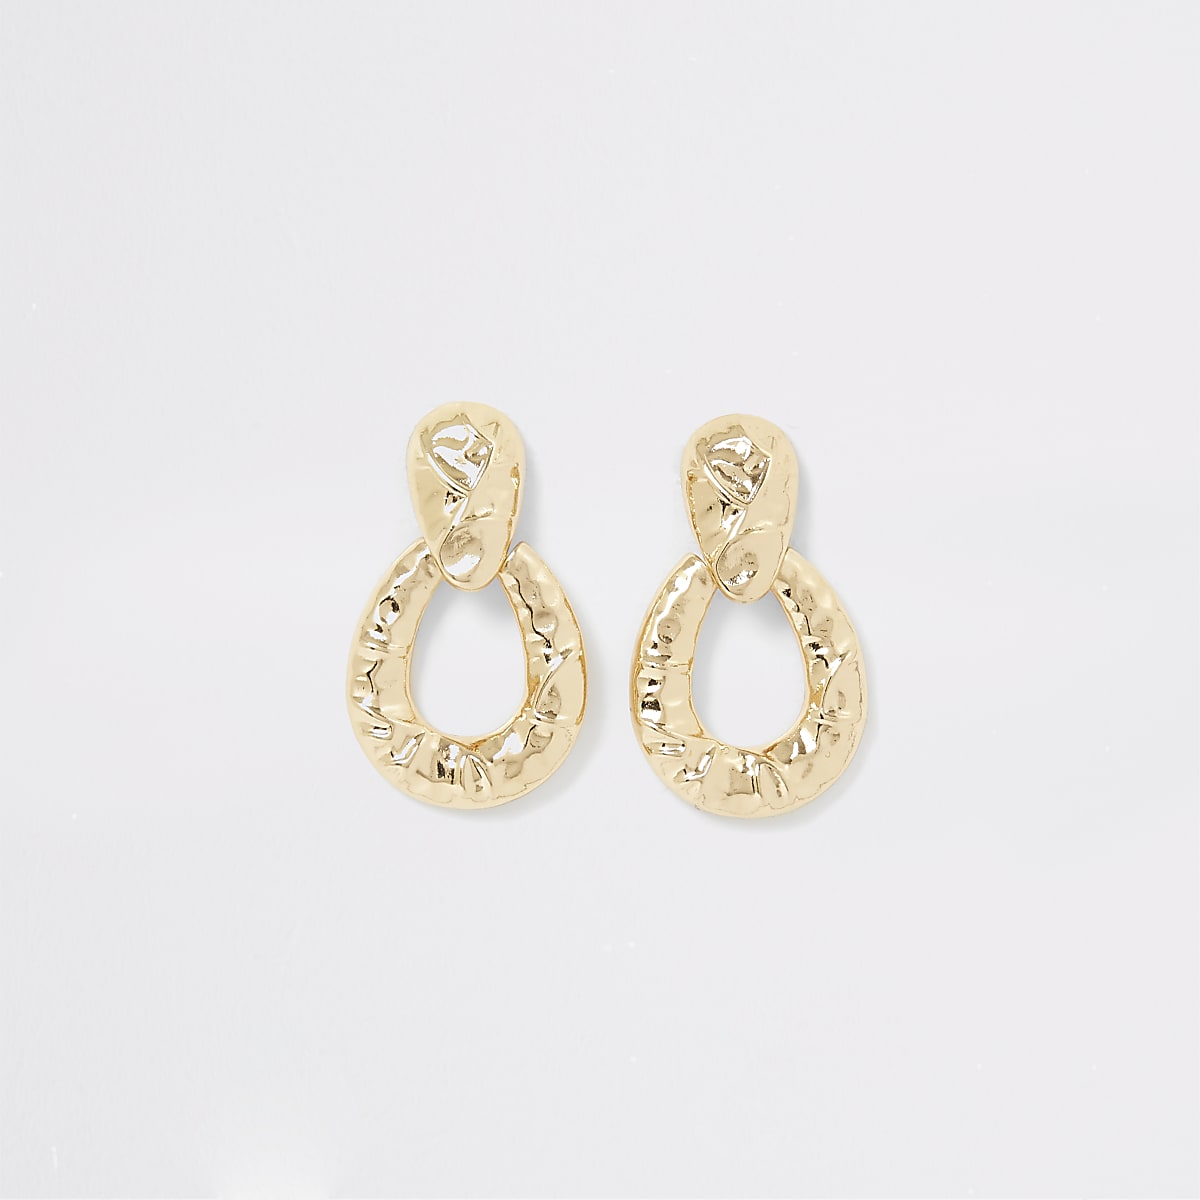 Gold colour battered door knocker earrings